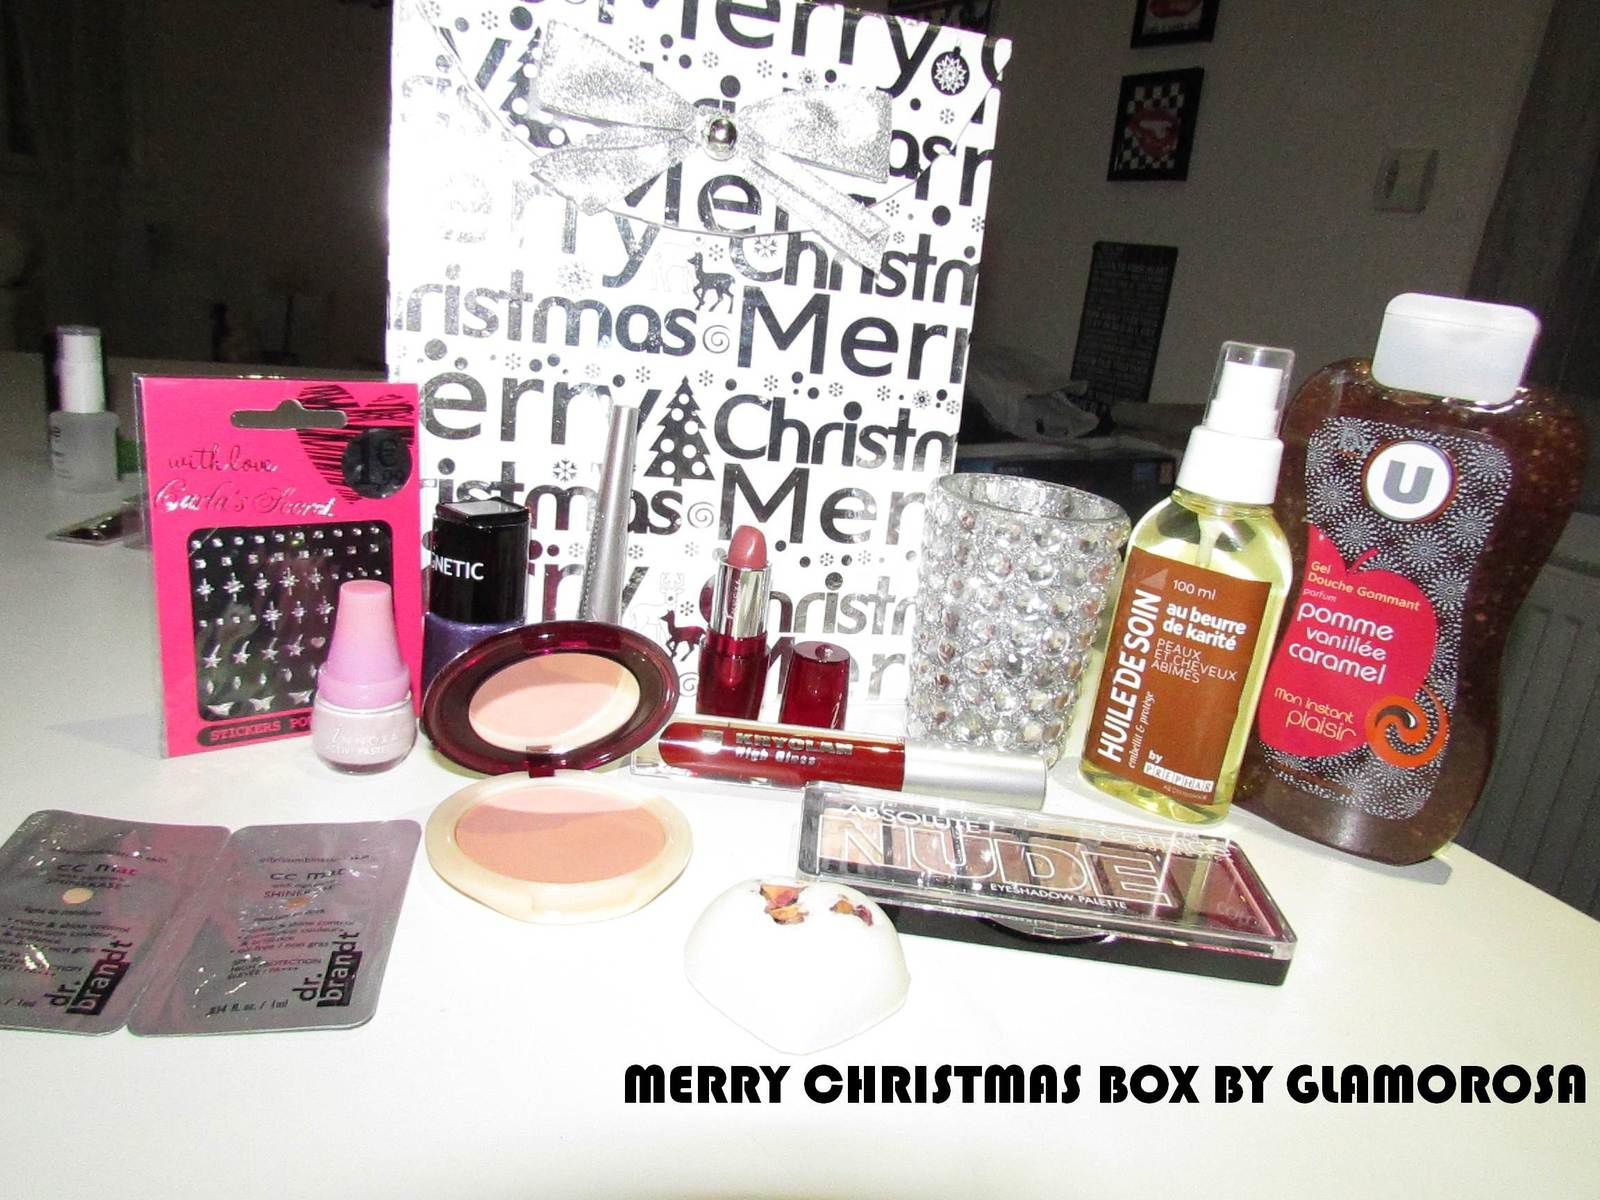 MERRY CHRISTMAS BOX CONCOURS BY GLAMOROSA